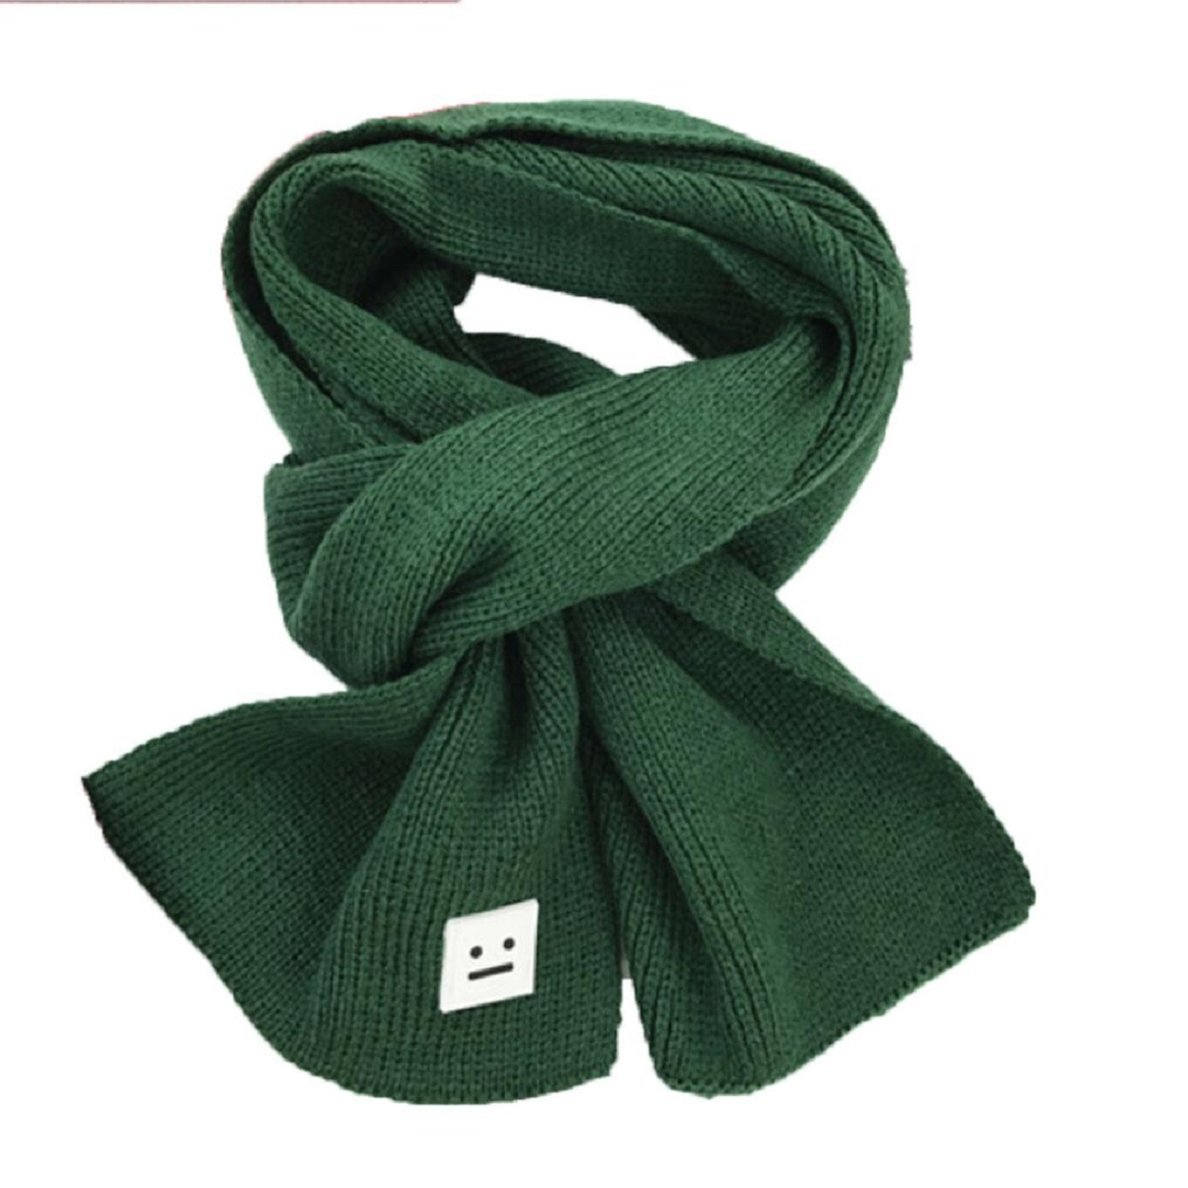 Yihaojia Fashion Smile Children Knitted Scarf Winter Keep Warm Girls Boys Scarves Green